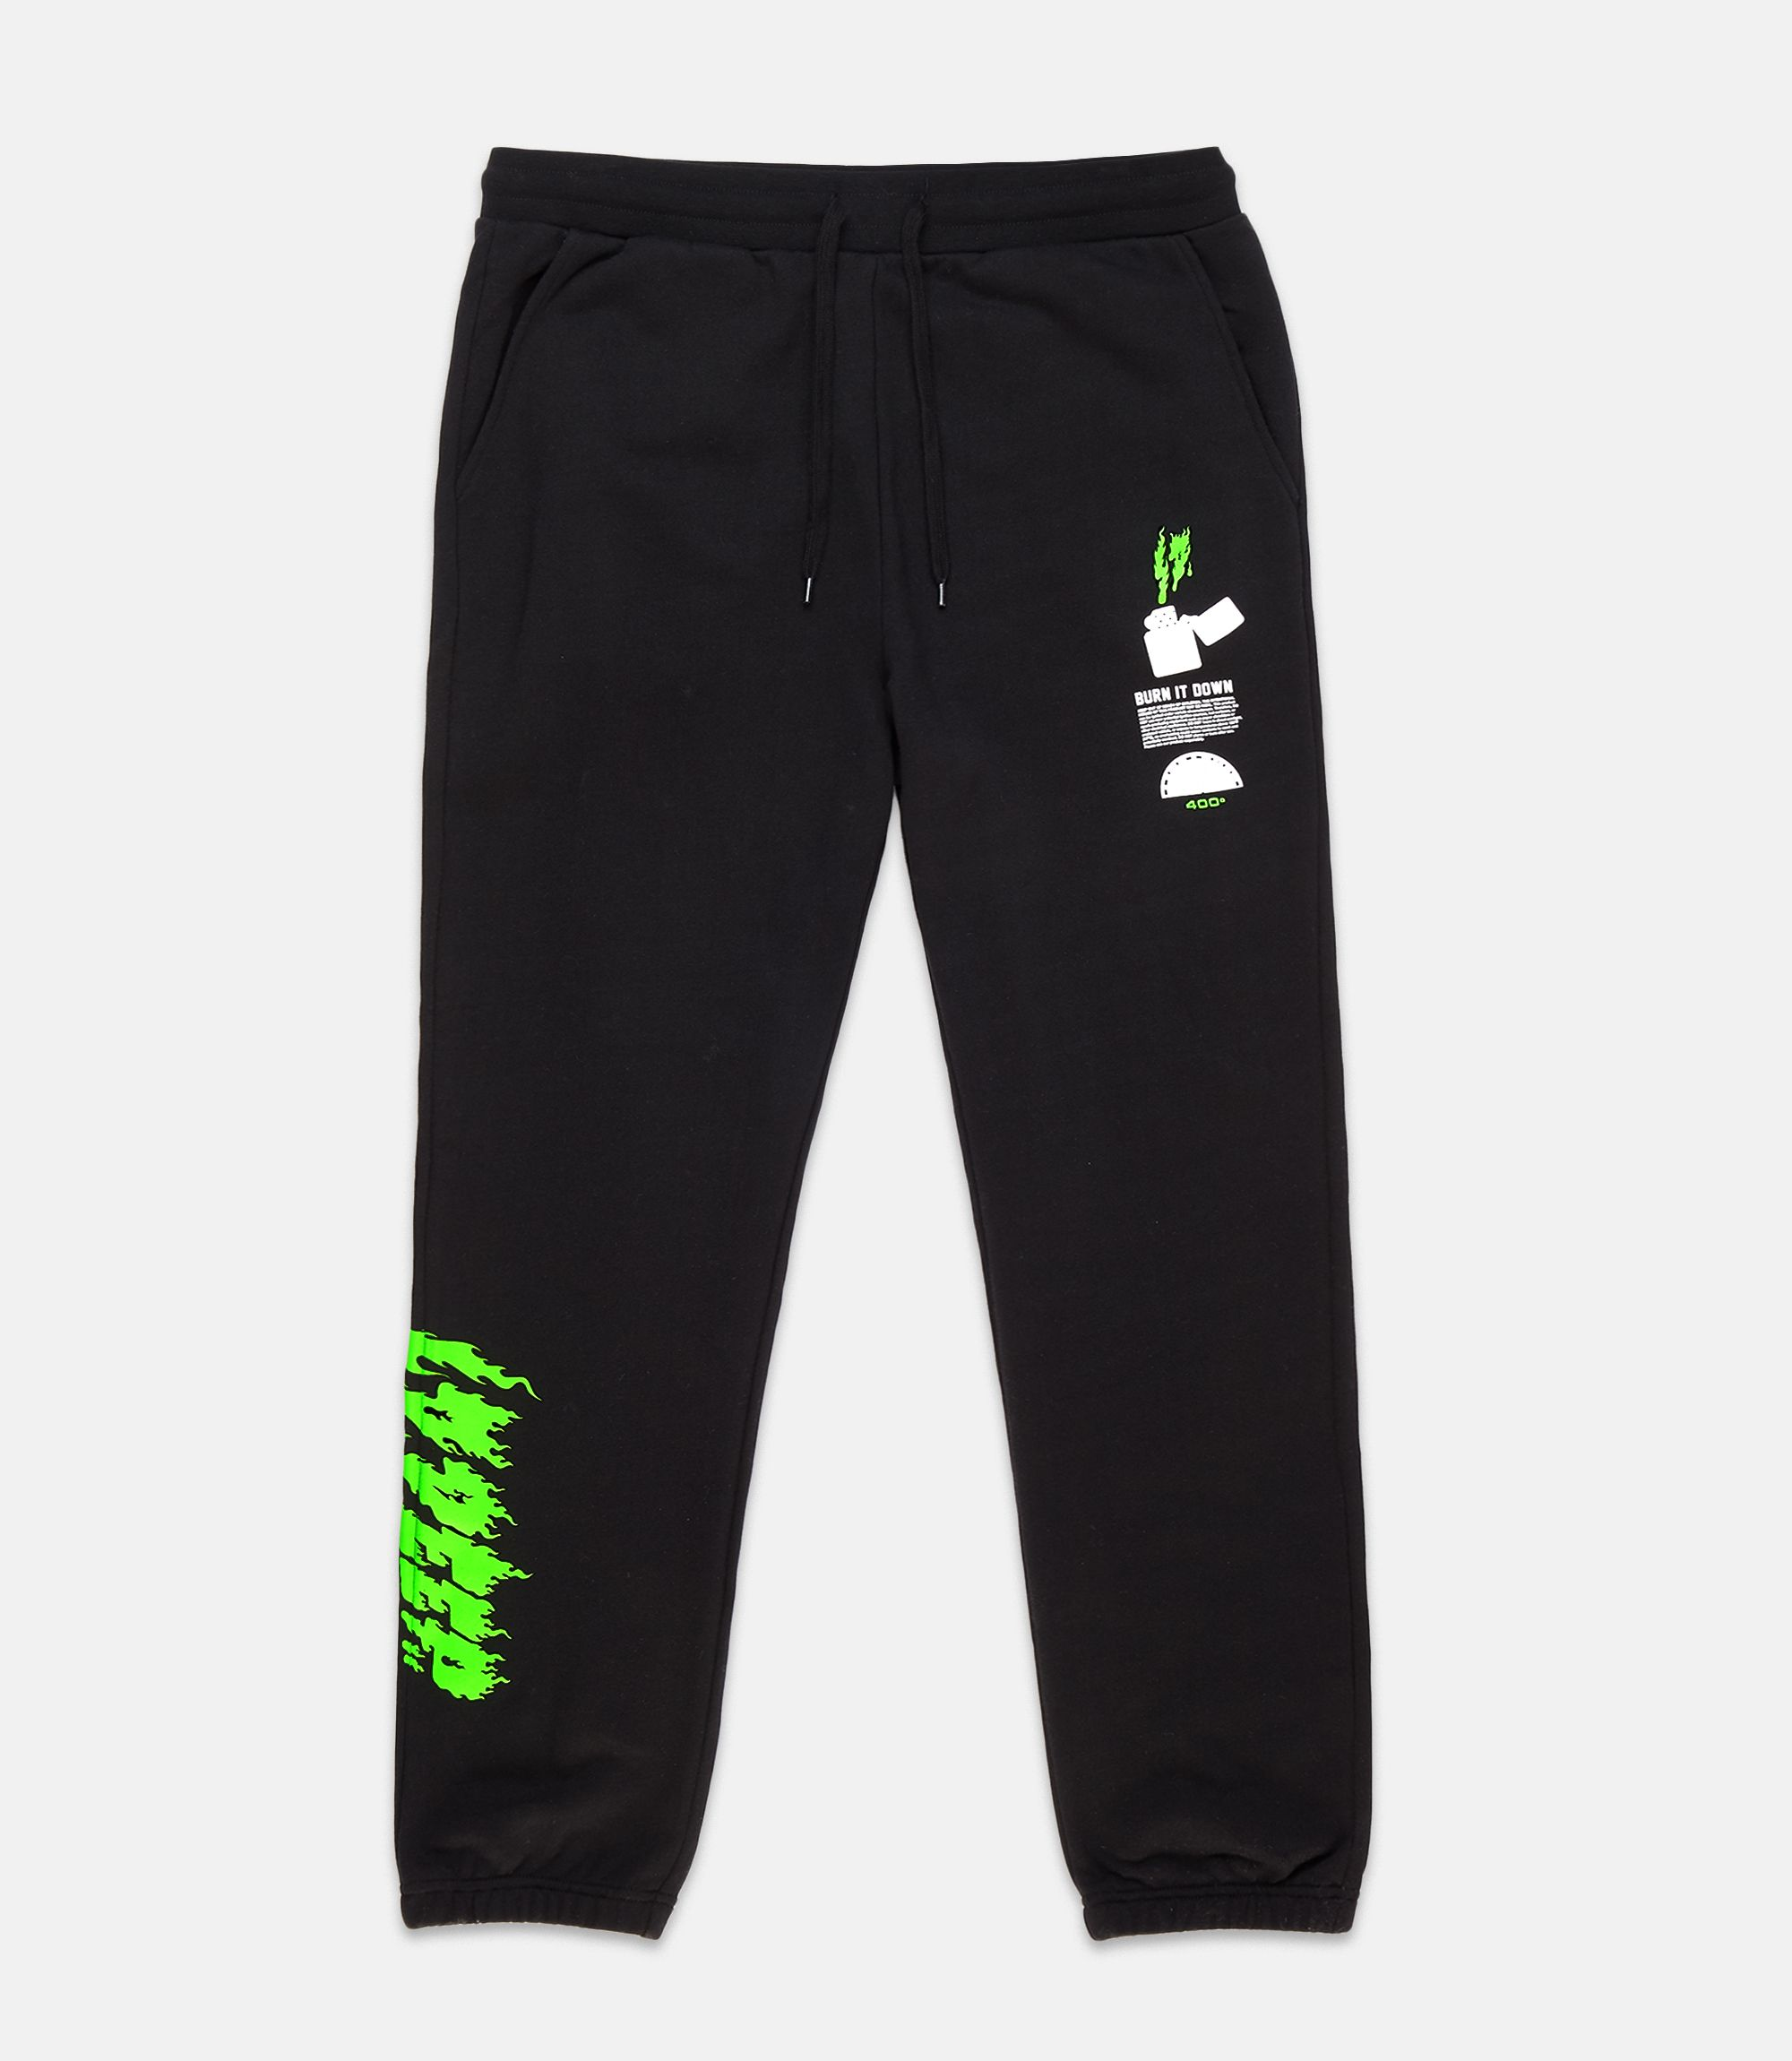 huge discount cdaac ef79b ight weight fleece sweatpants with screenprinted graphics and cased elastic  and drawcord waist.